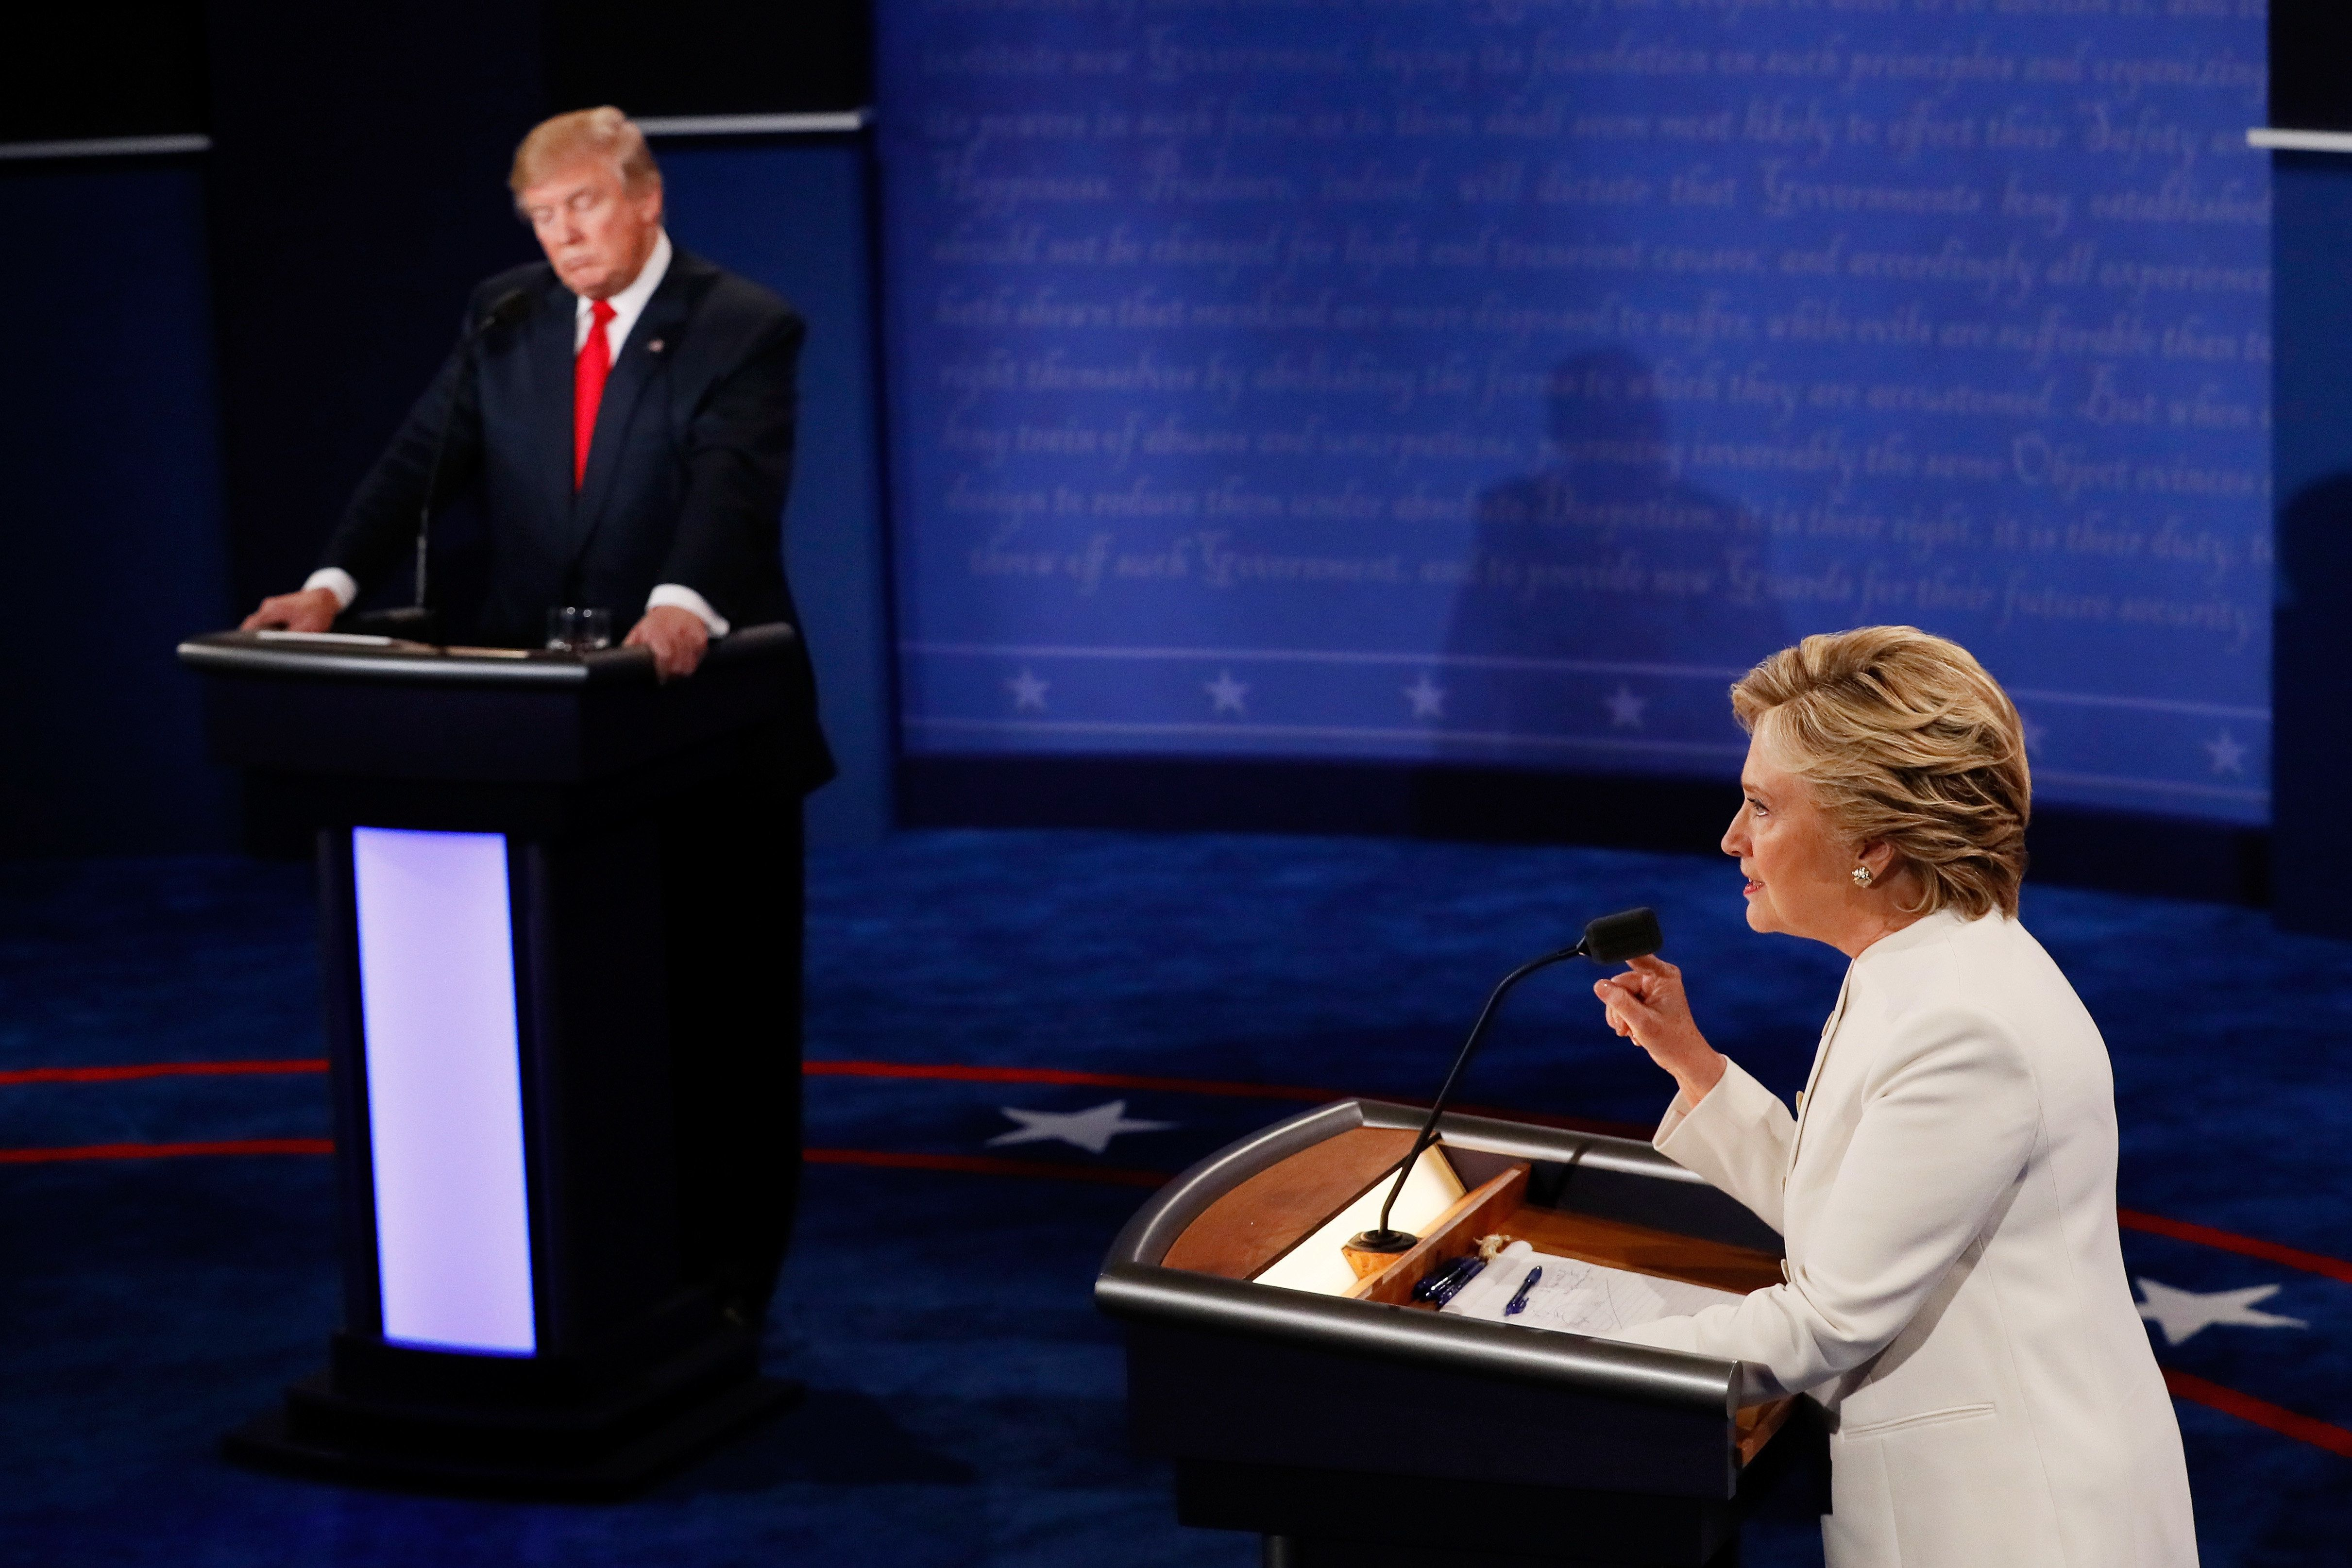 LAS VEGAS, NV - OCTOBER 19:  Democratic presidential nominee former Secretary of State Hillary Clinton (R) debates with Republican presidential nominee Donald Trump during the third U.S. presidential debate at the Thomas & Mack Center on October 19, 2016 in Las Vegas, Nevada. Tonight is the final debate ahead of Election Day on November 8.  (Photo by Mark Ralston-Pool/Getty Images)